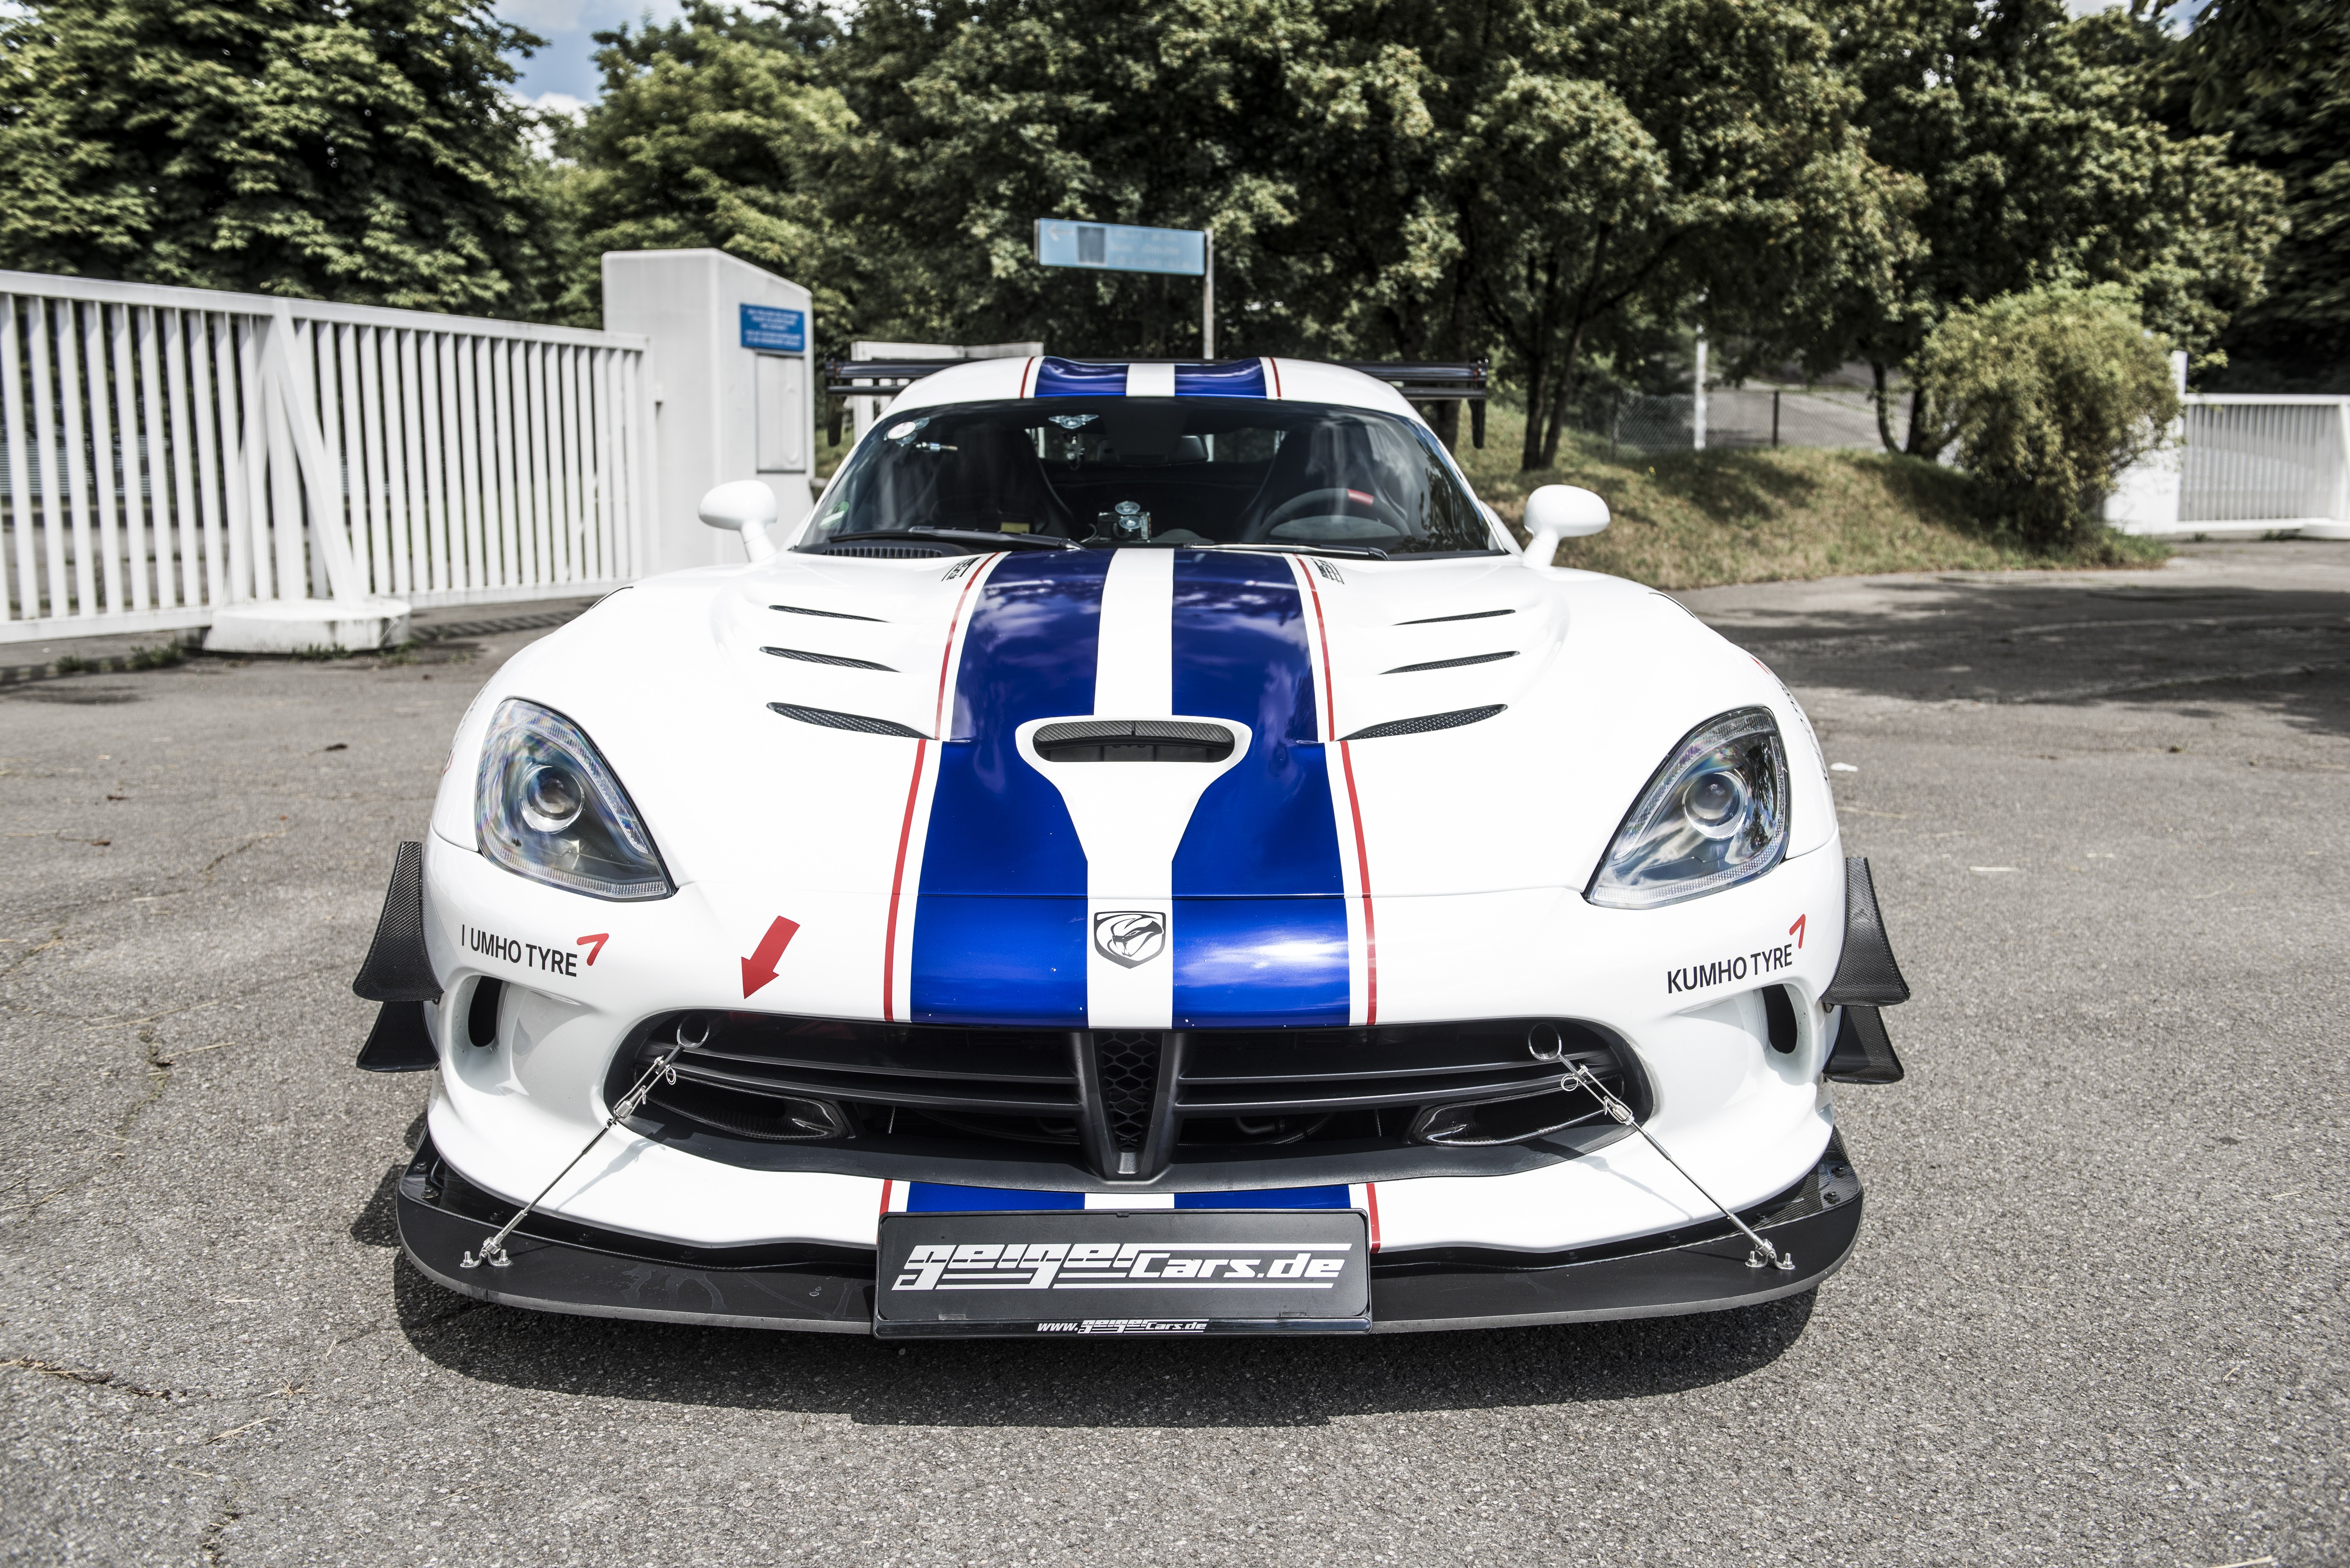 Wallpaper Dodge Viper Acr Geiger Cars White Speed Cars